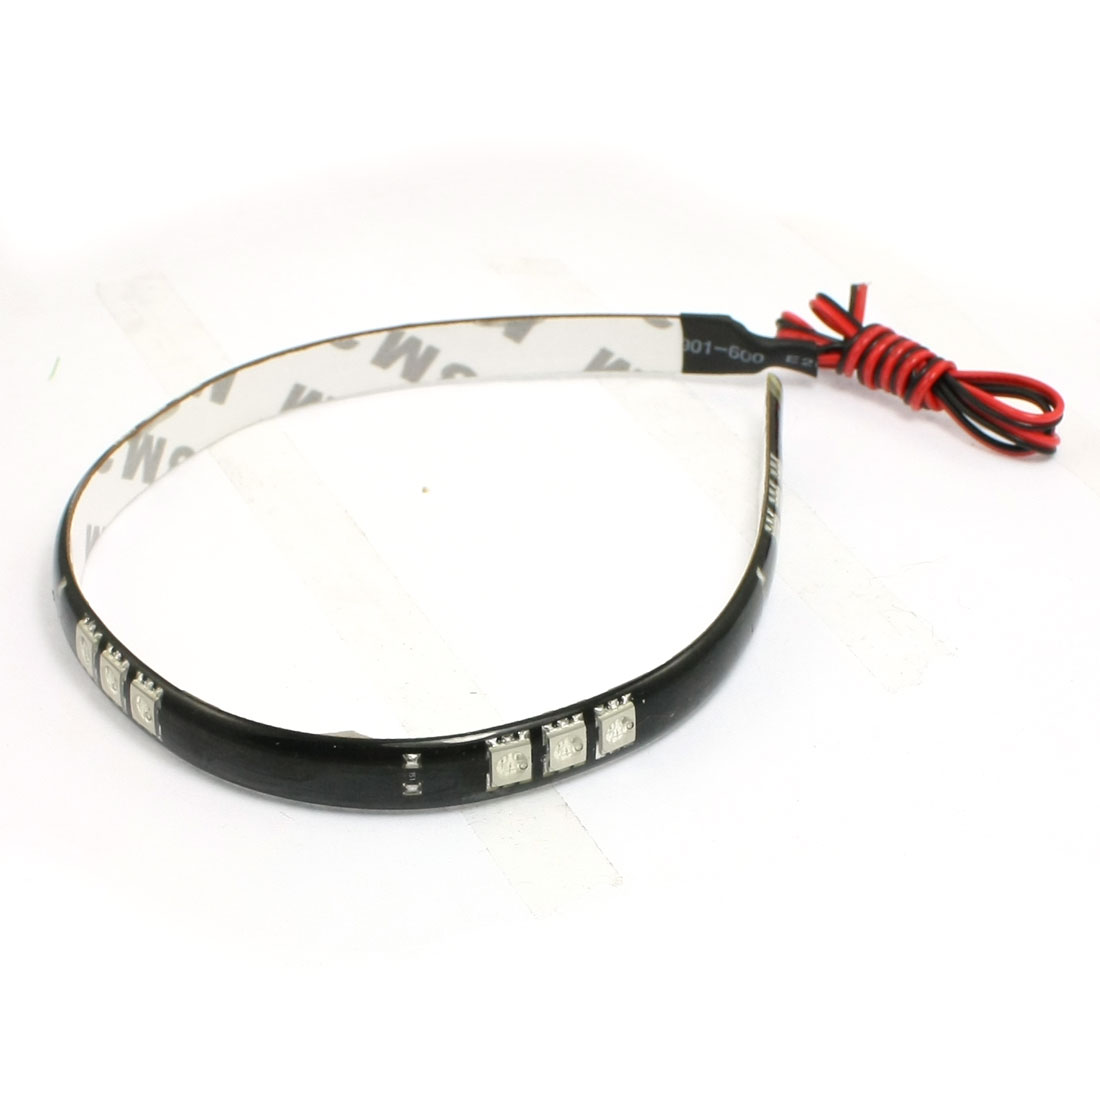 Auto Car Blue 15 5050 SMD LED Light Flexible Lamp Strip 30cm